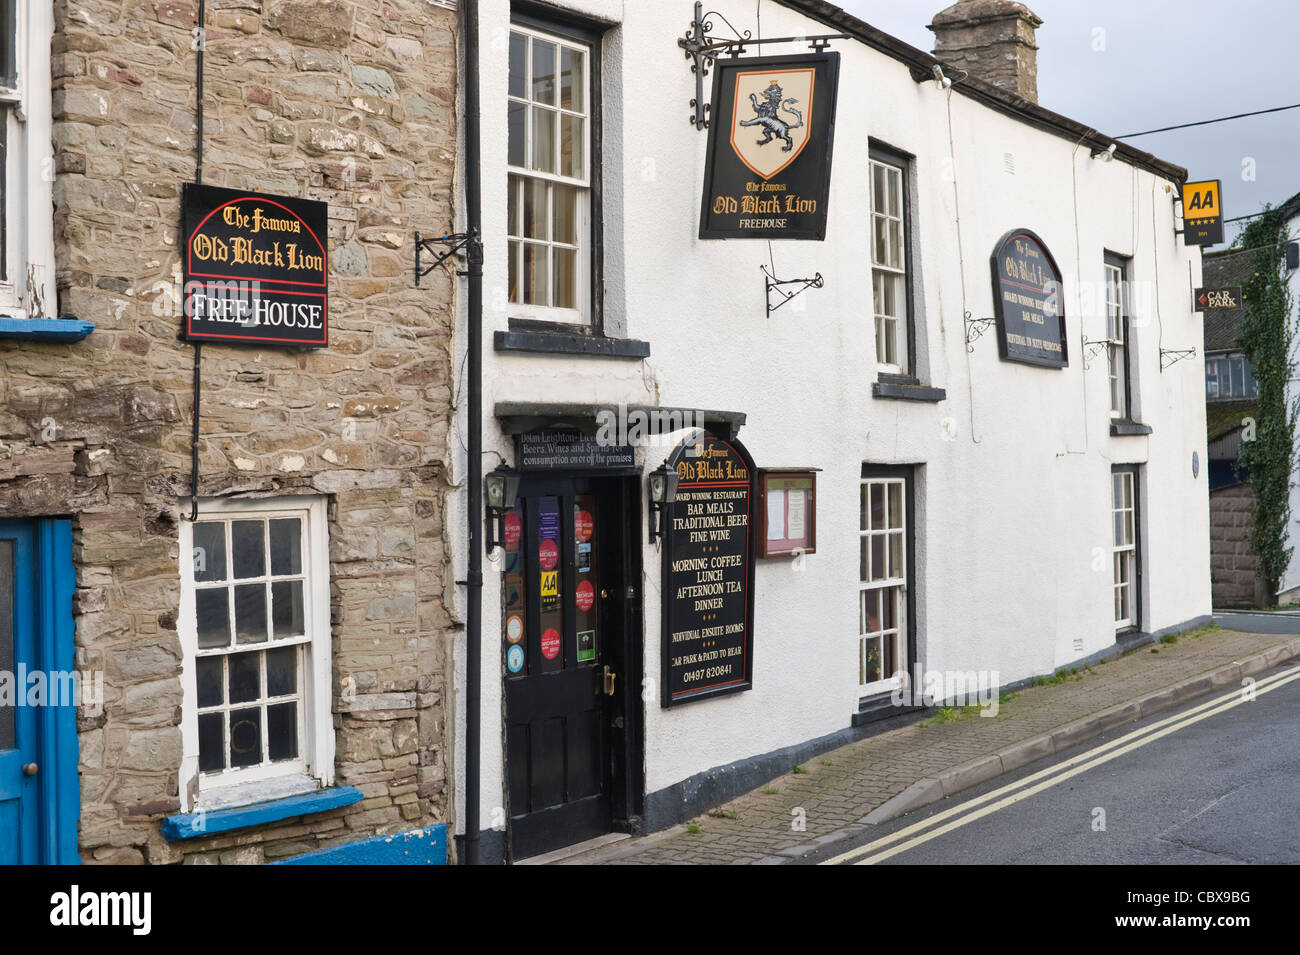 Exterior of The Famous Old Black Lion pub Hay-on-Wye Powys Wales UK - Stock Image